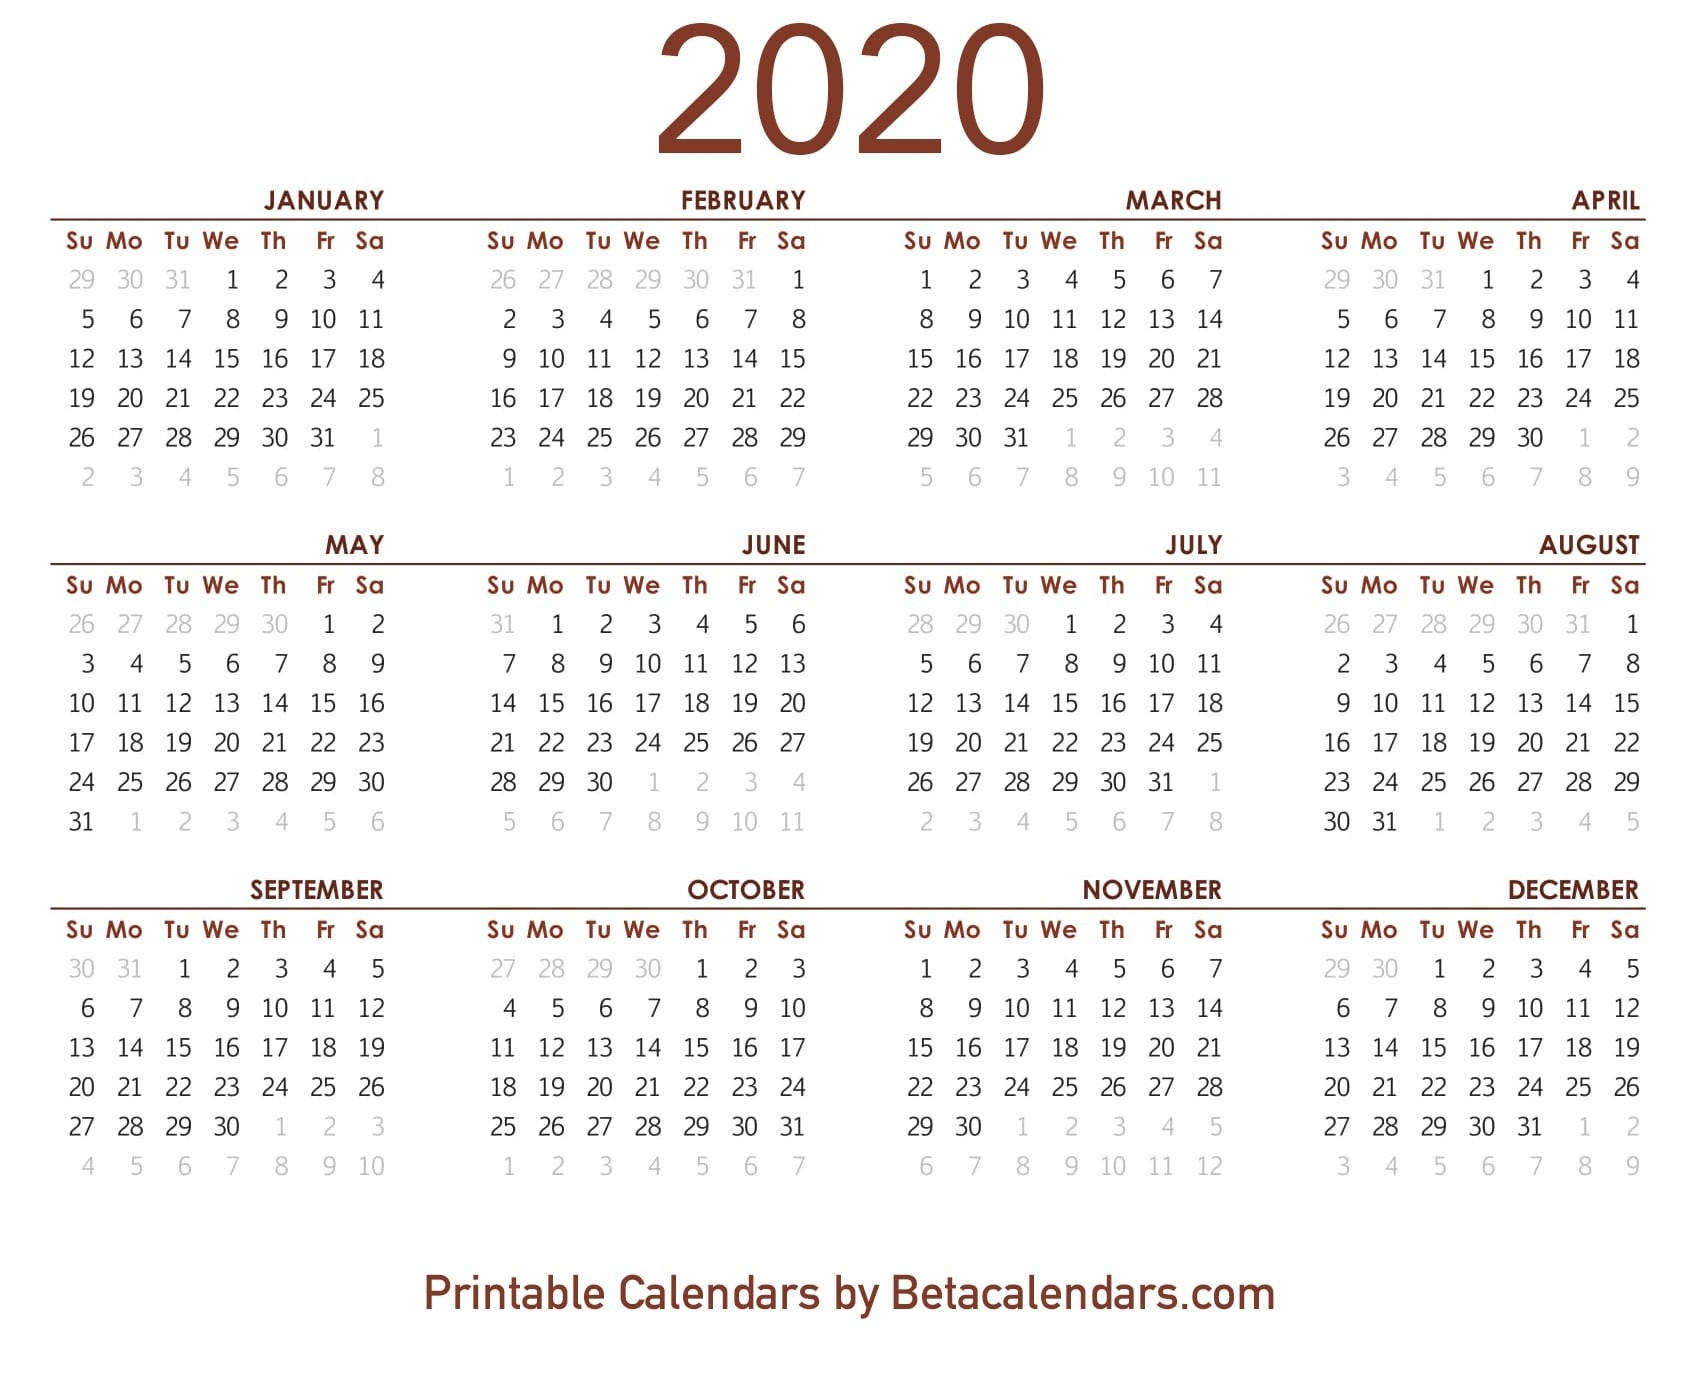 2020 Calendar - Beta Calendars  2020 Calendar Printable Full Page